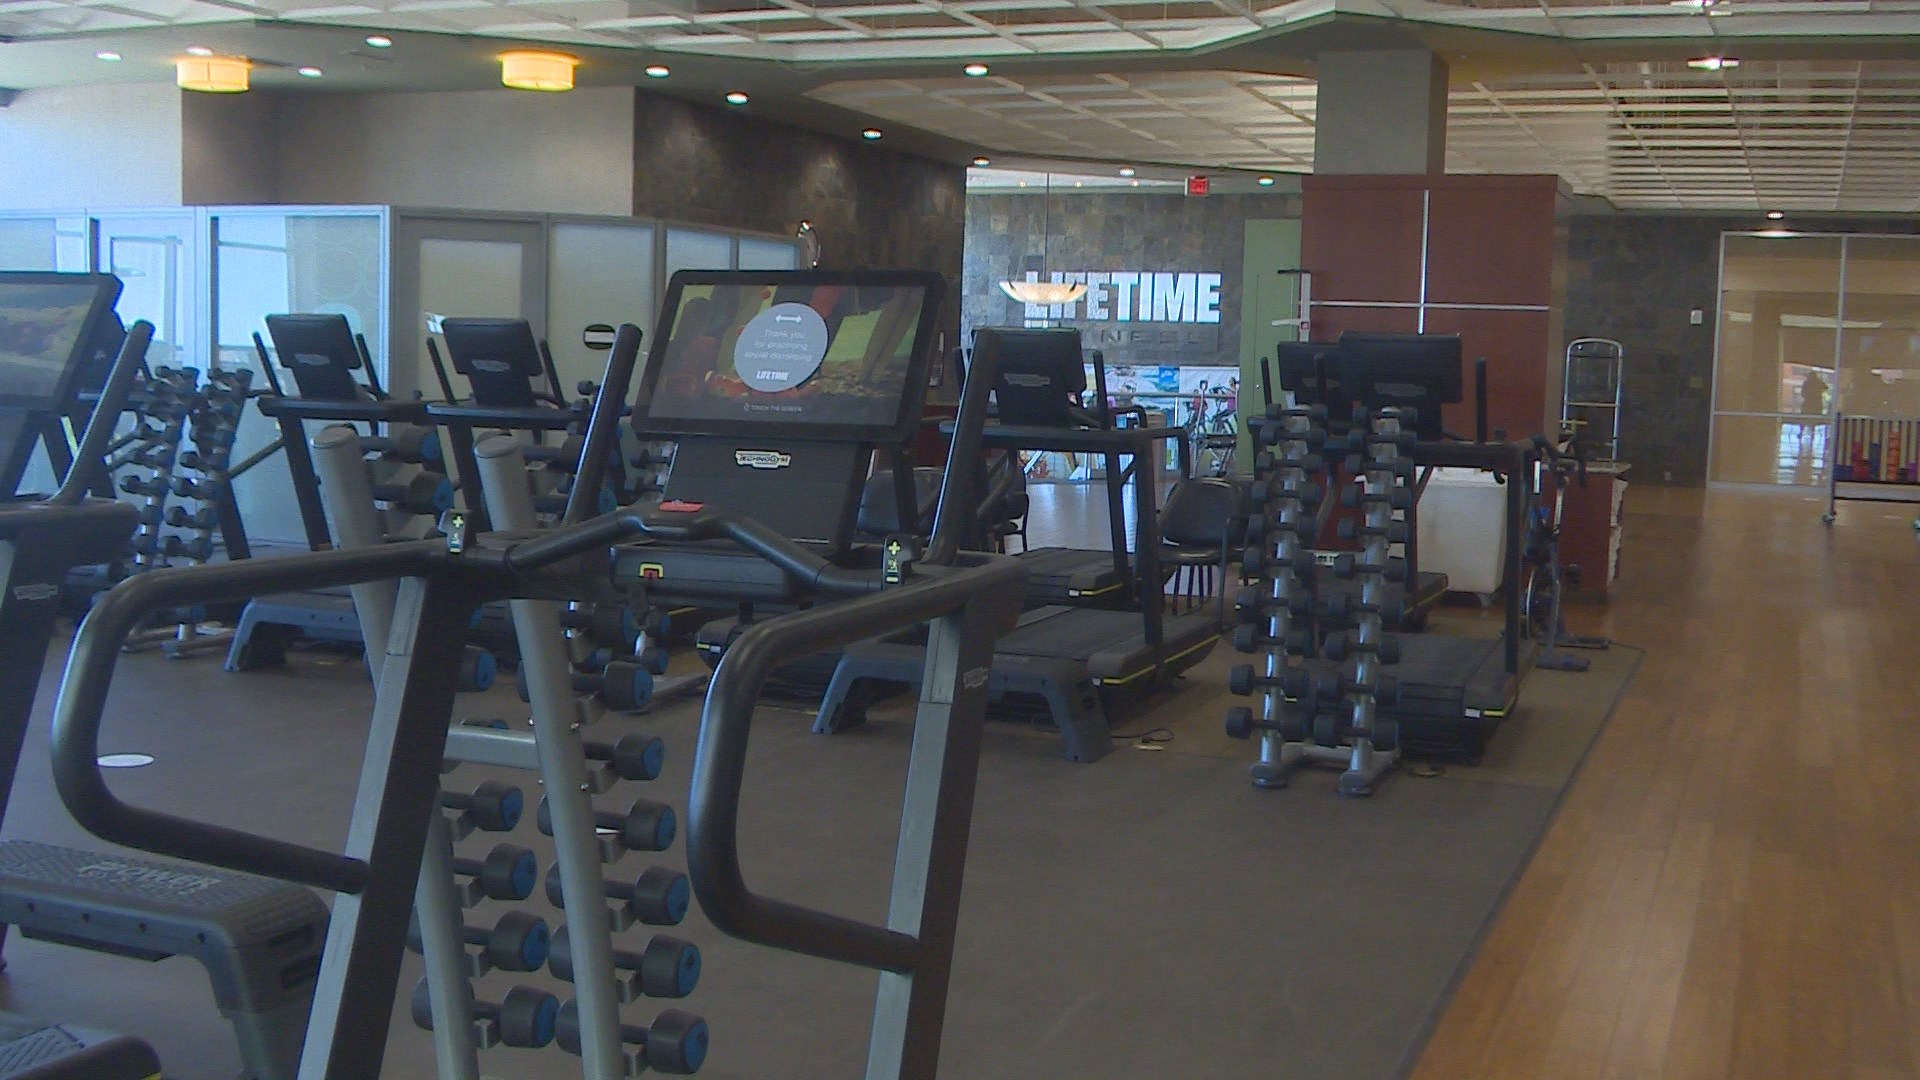 Lifetime Fitness Reopens Doors With New Coronavirus Policies In Place